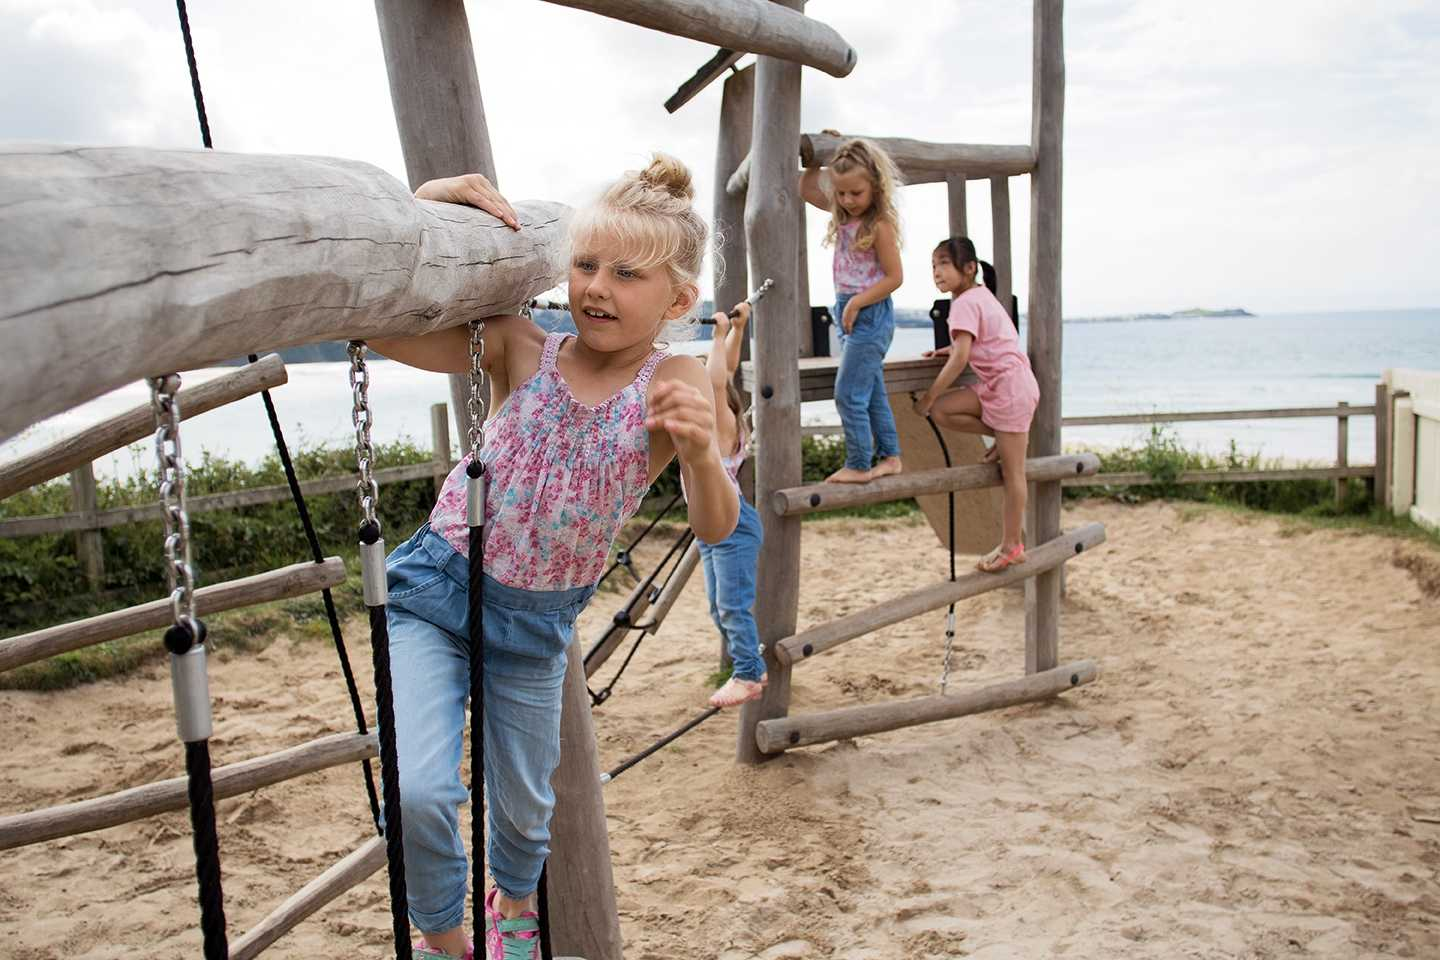 Children playing in the outdoor play area